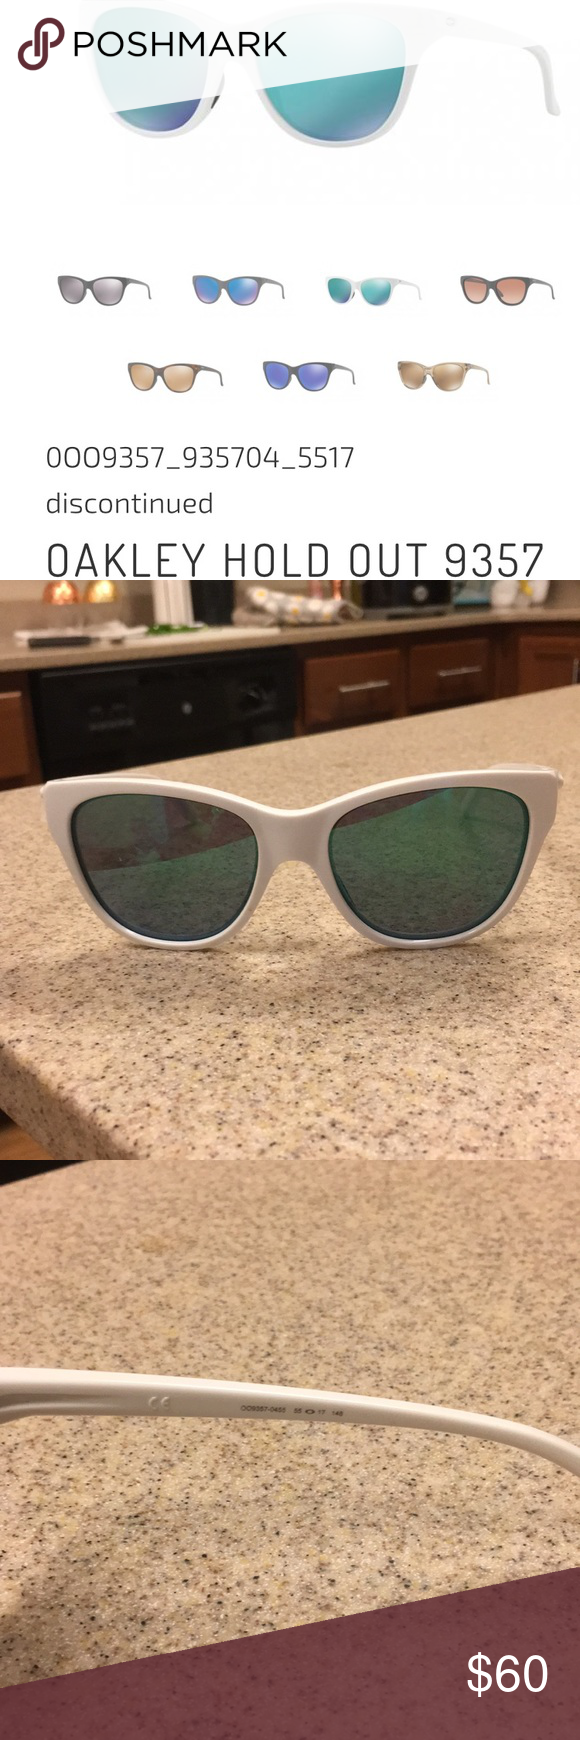 ec9bcaacbc Never worn OAKLEY HOLDOUT authentic sunglasses Brand new